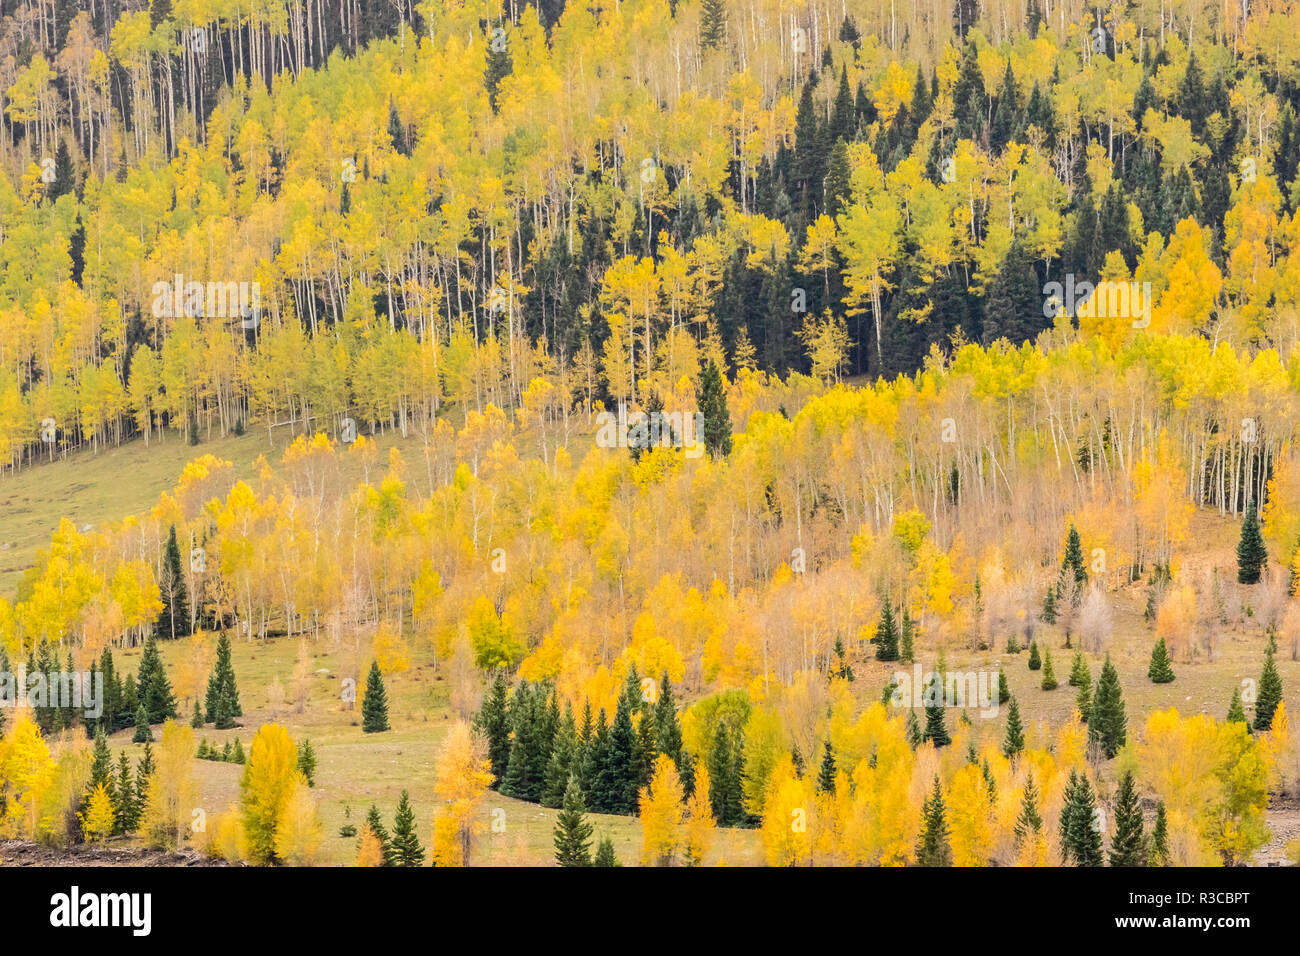 USA, Colorado, Gunnison National Forest. Mountain trees in fall color. - Stock Image